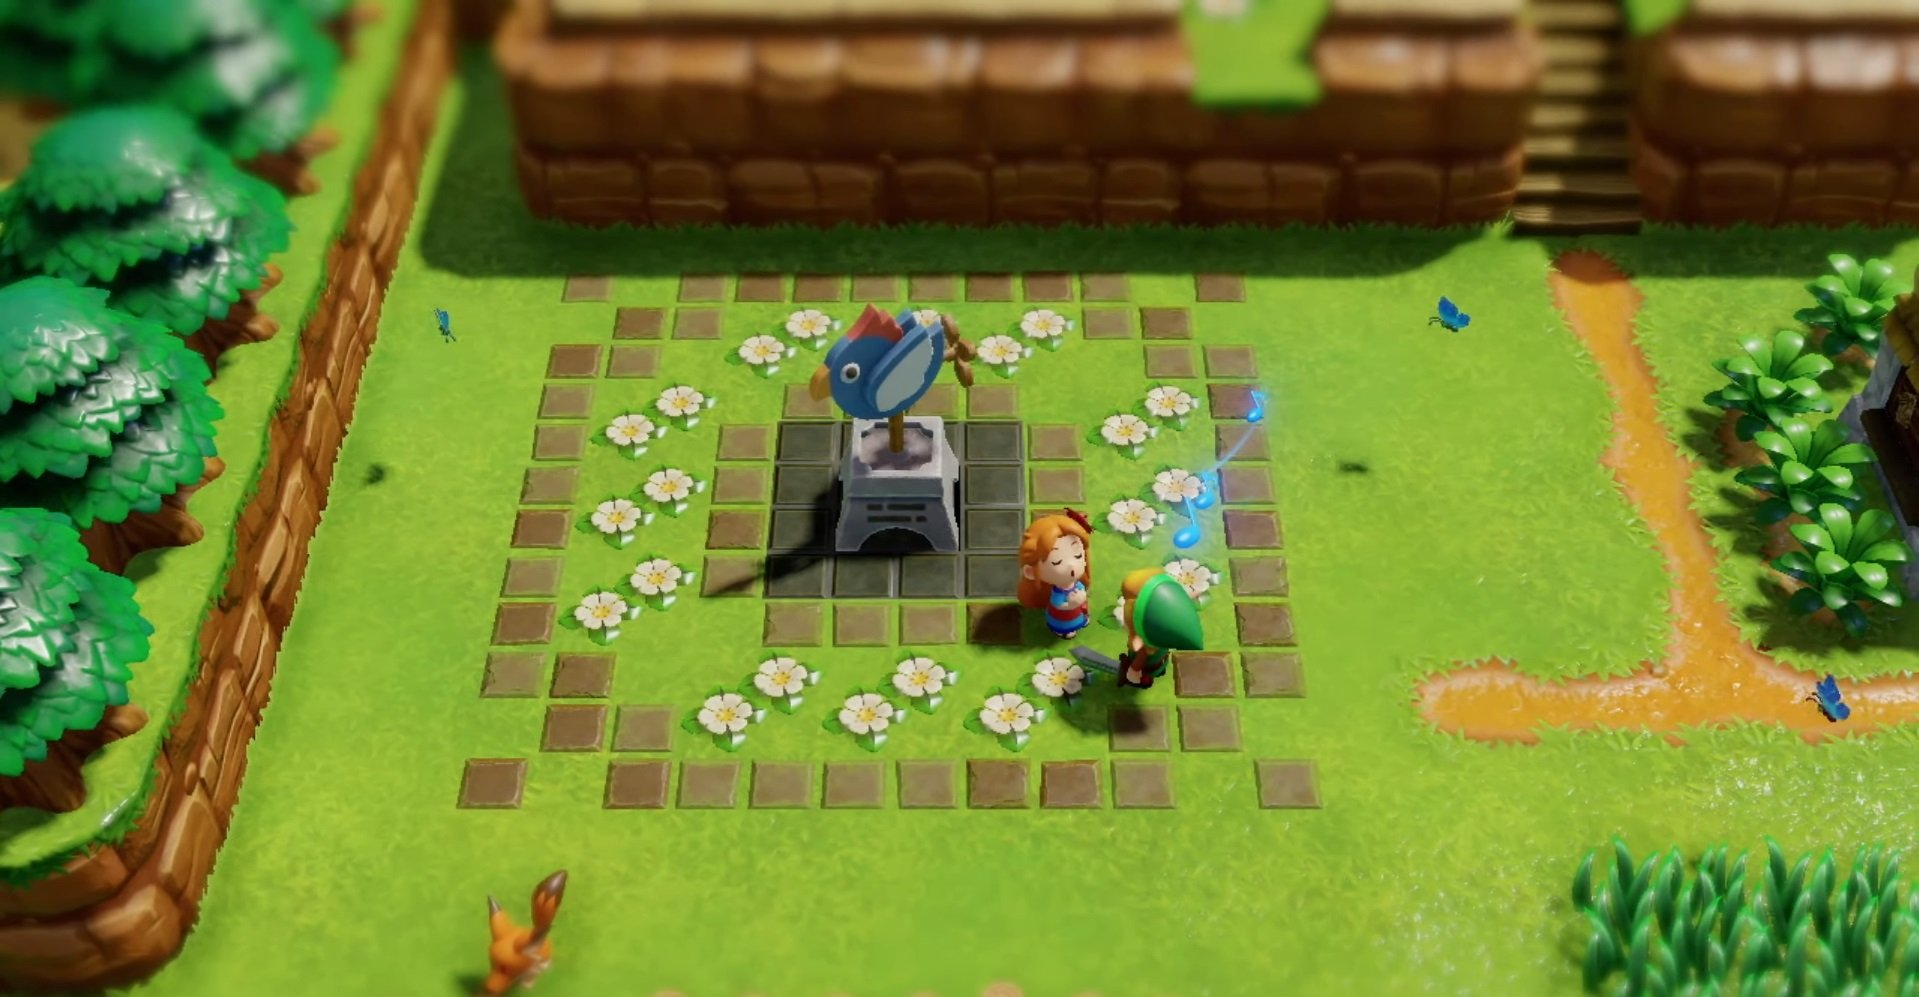 An updated version of Link's Awakening is coming to Nintendo Switch in 2019!